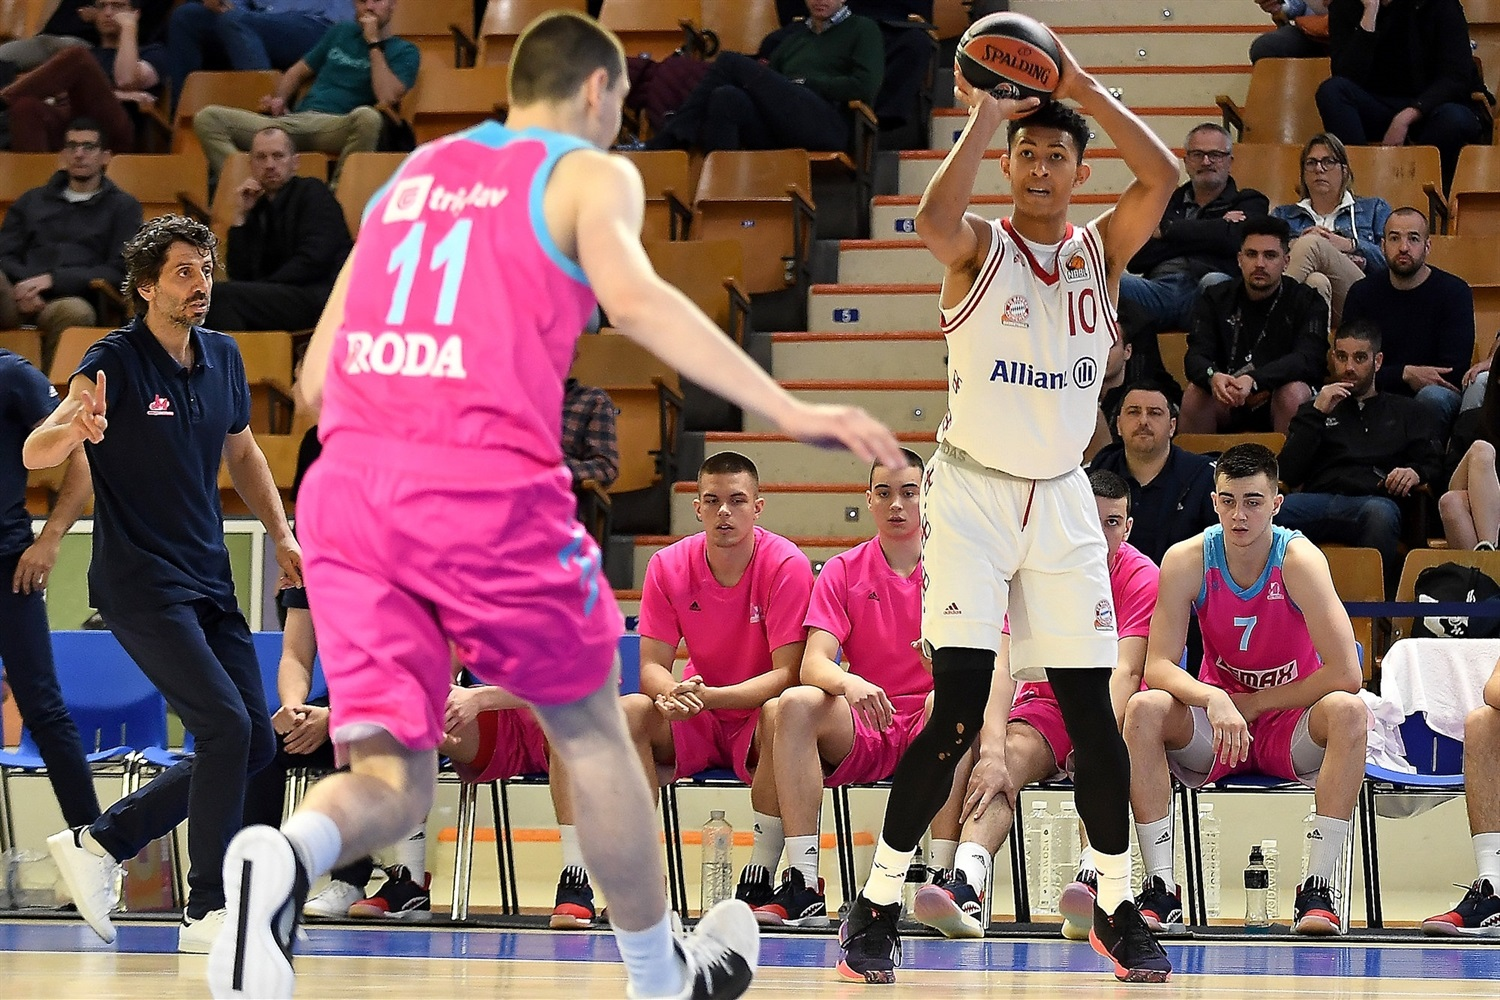 Jason George - U18 FC Bayern Munich - ANGT Final Four Vitoria-Gasteiz 2019 - JT18